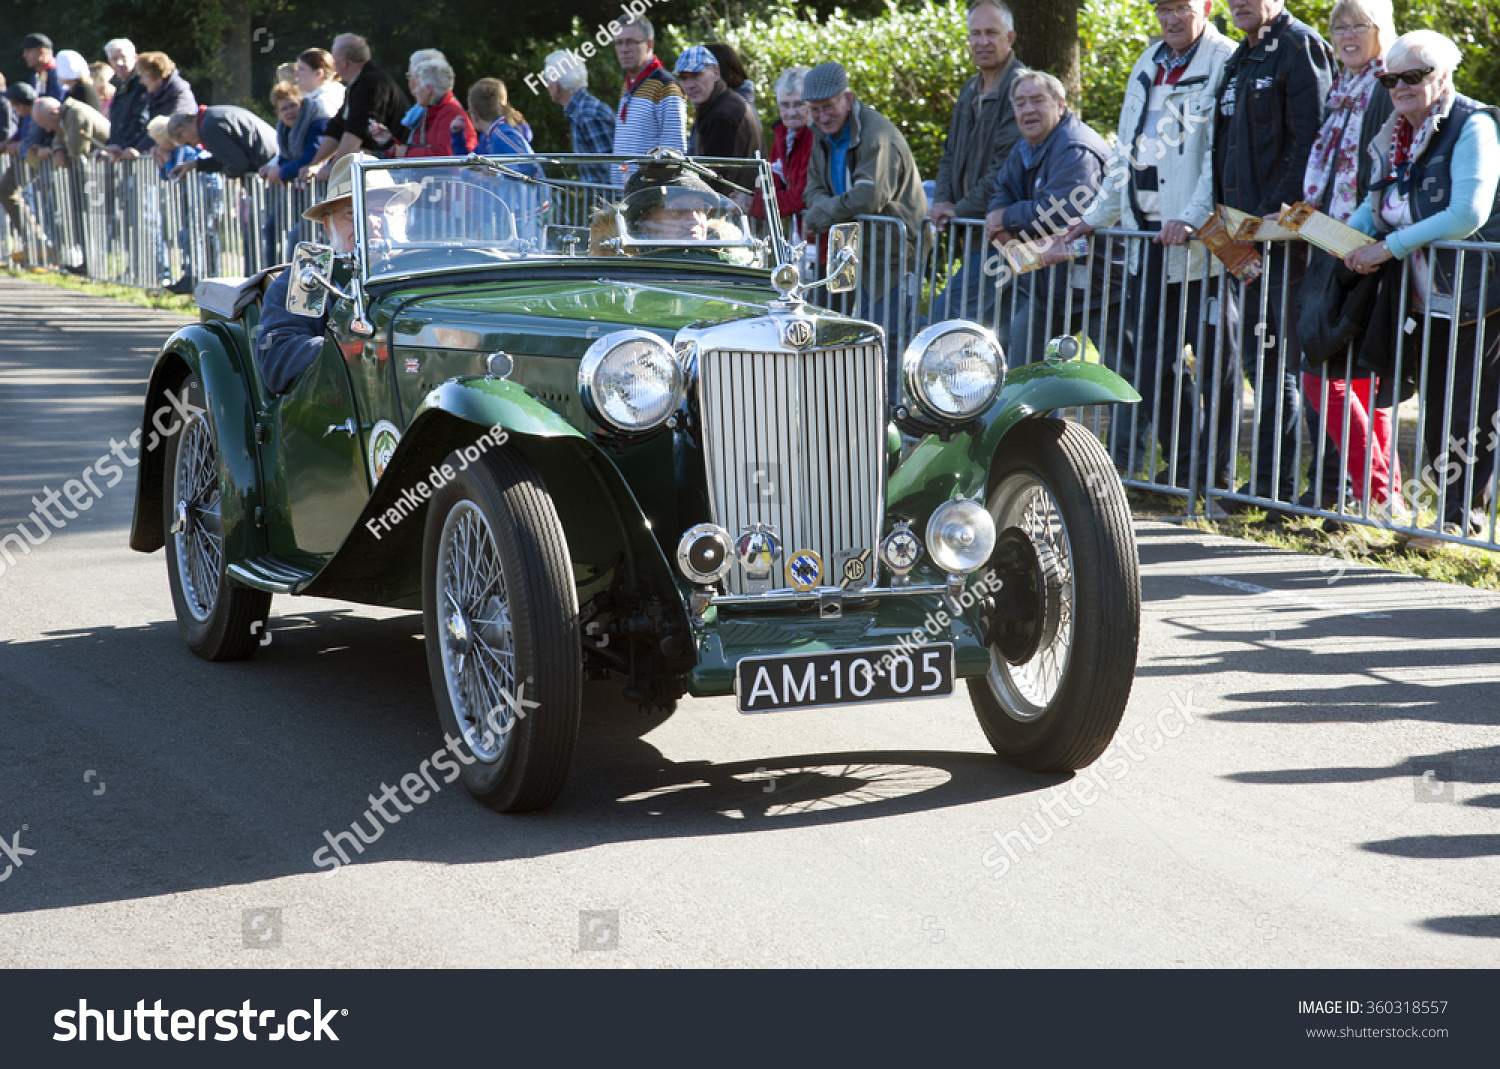 Nostalgia Country Old Timer Cars Countryside Stock Photo (Royalty ...